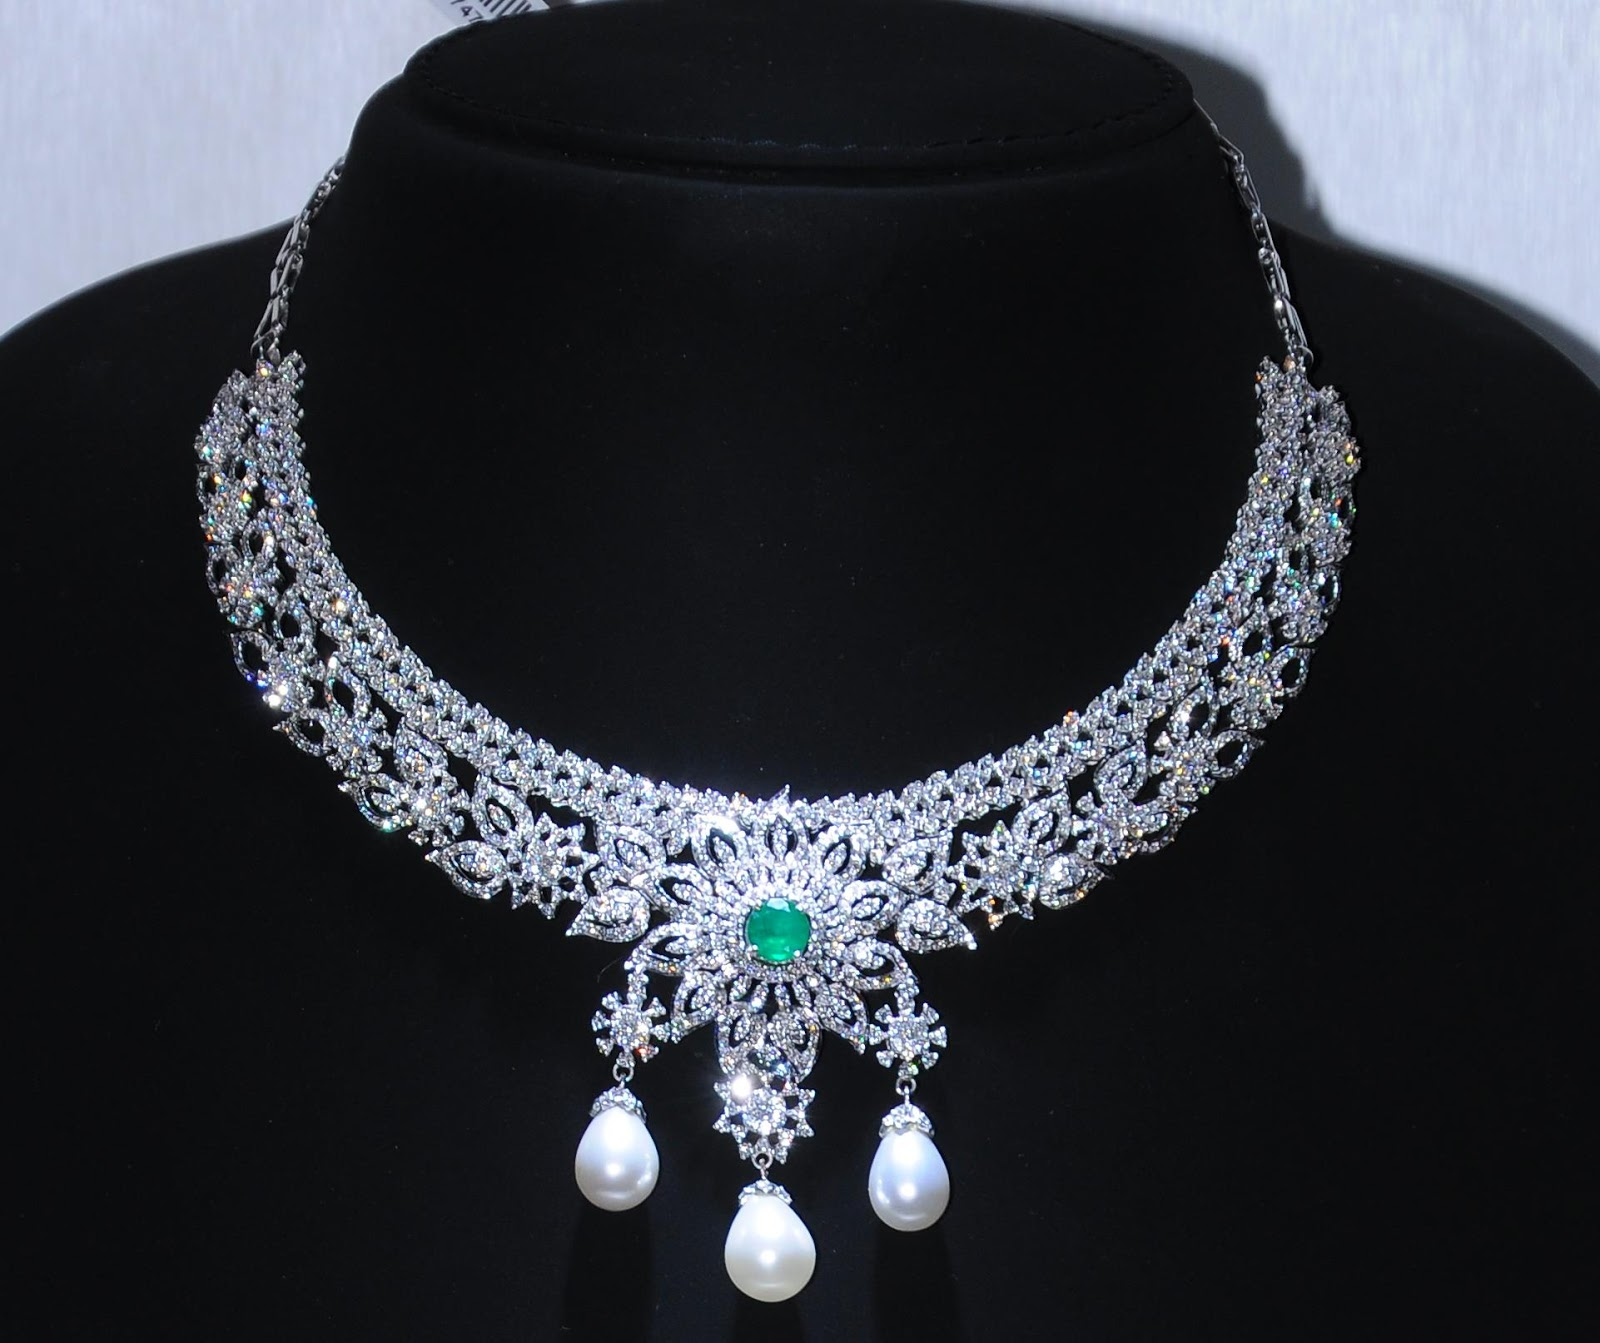 diamond necklace Malani jewelers provide 18kt gold and white gold diamond necklace sets, indian gemstone diamond necklace set, online diamond necklace set usa store atlanta.